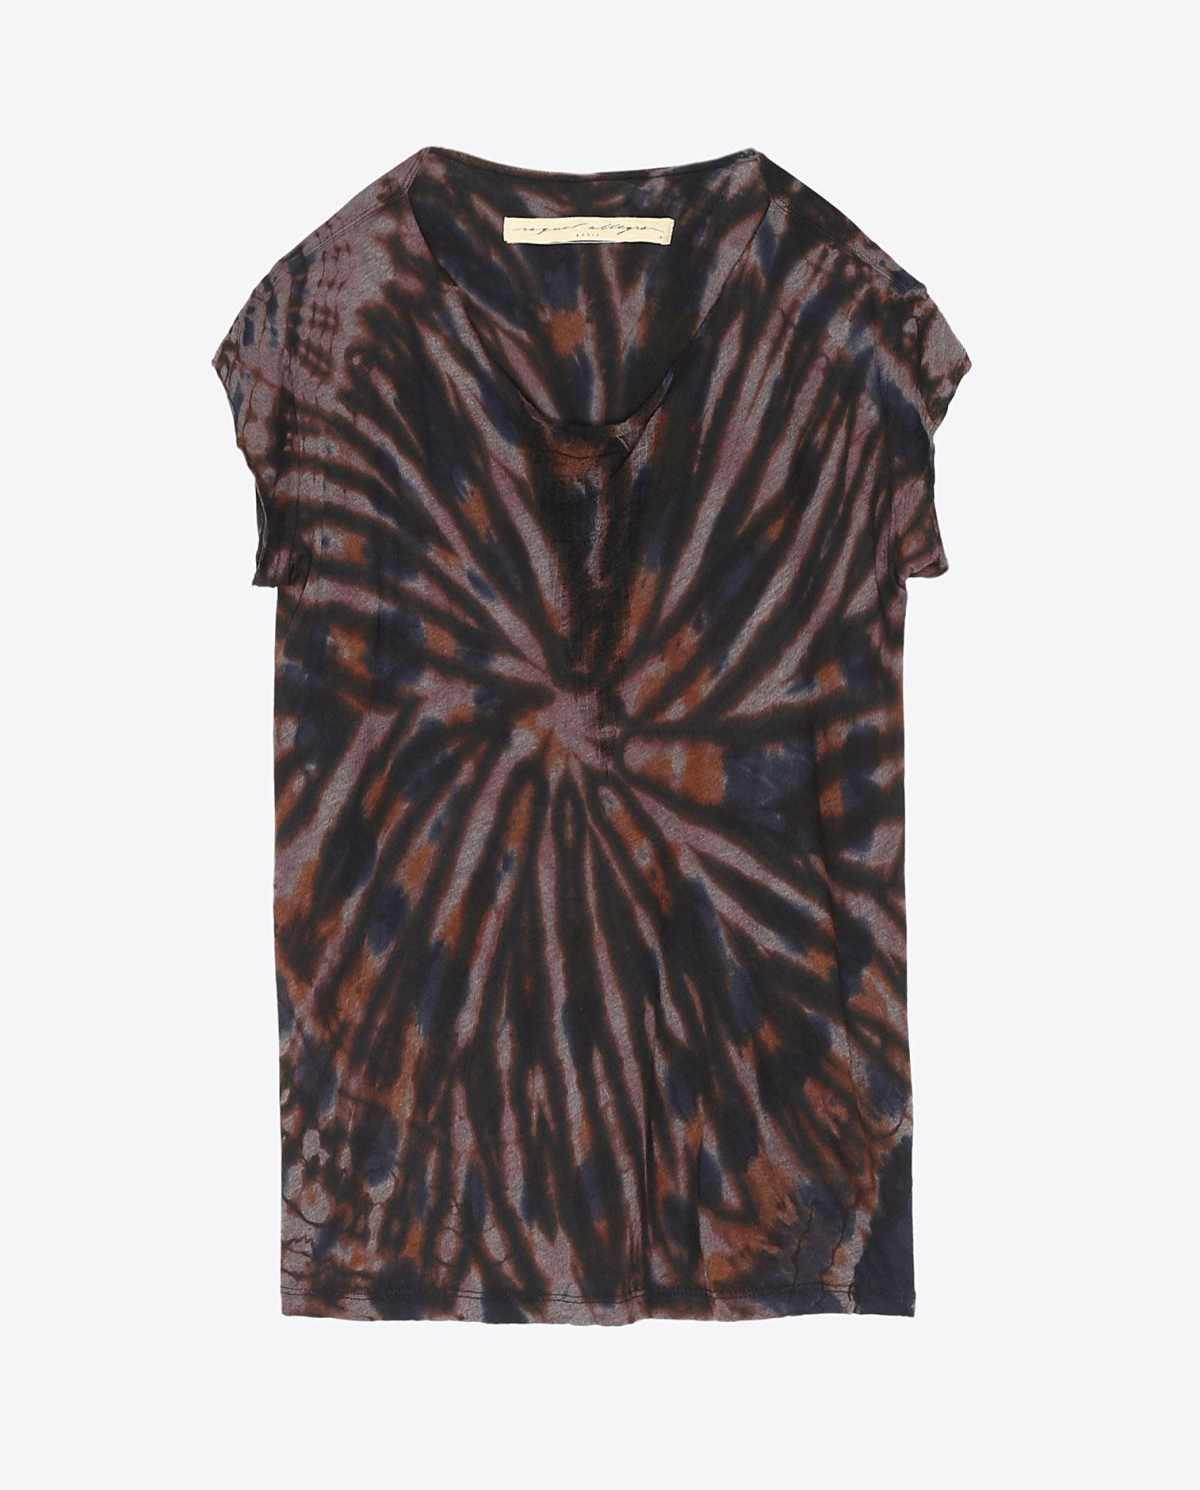 Raquel Allegra Pré-Collection Shred Front Muscle Tee Tie & Dye - Black Tiger